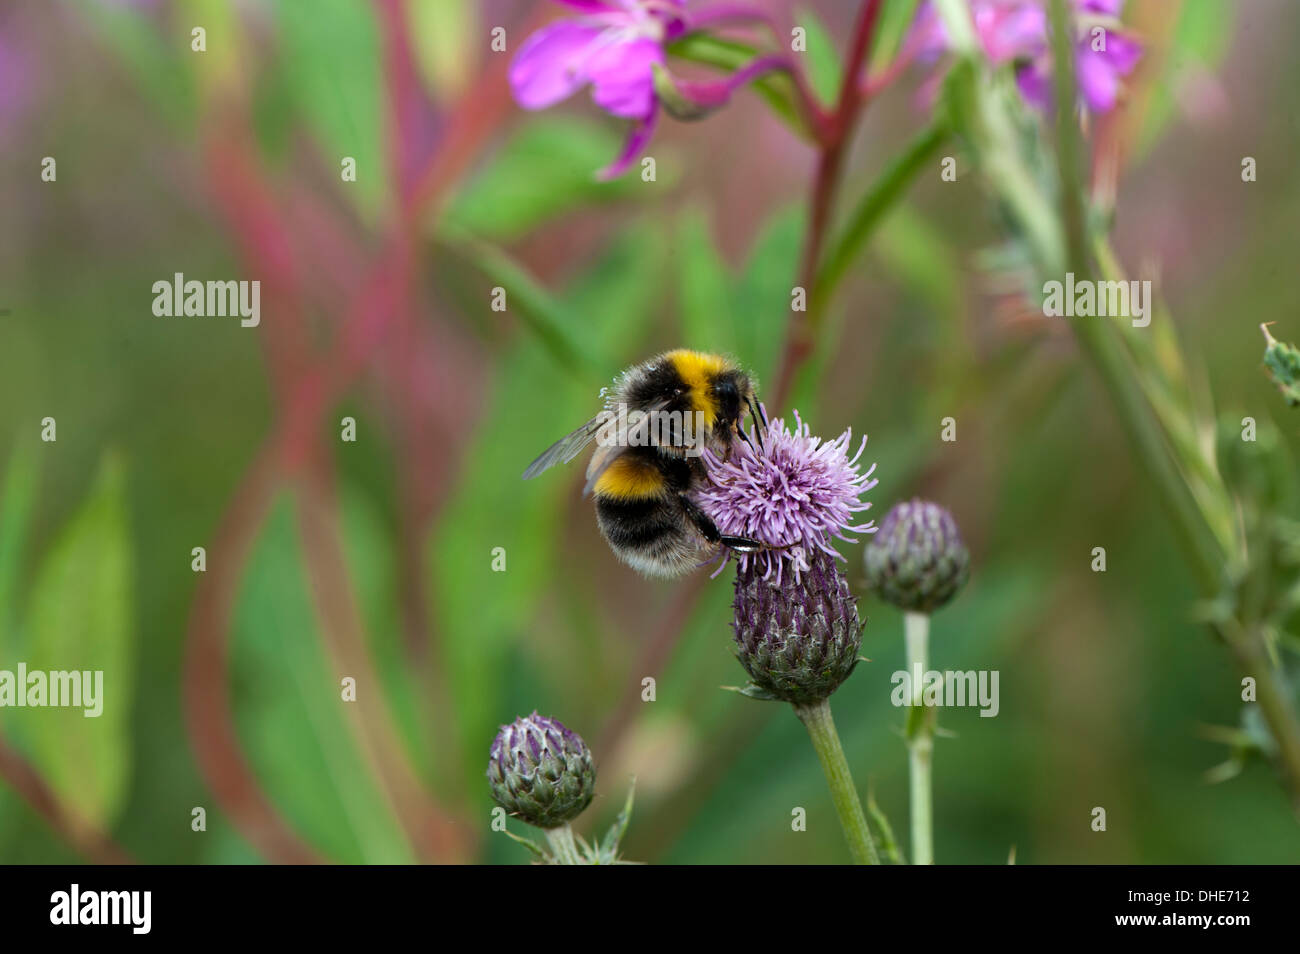 Bumble bee looking for nectar on a thistle flower. - Stock Image